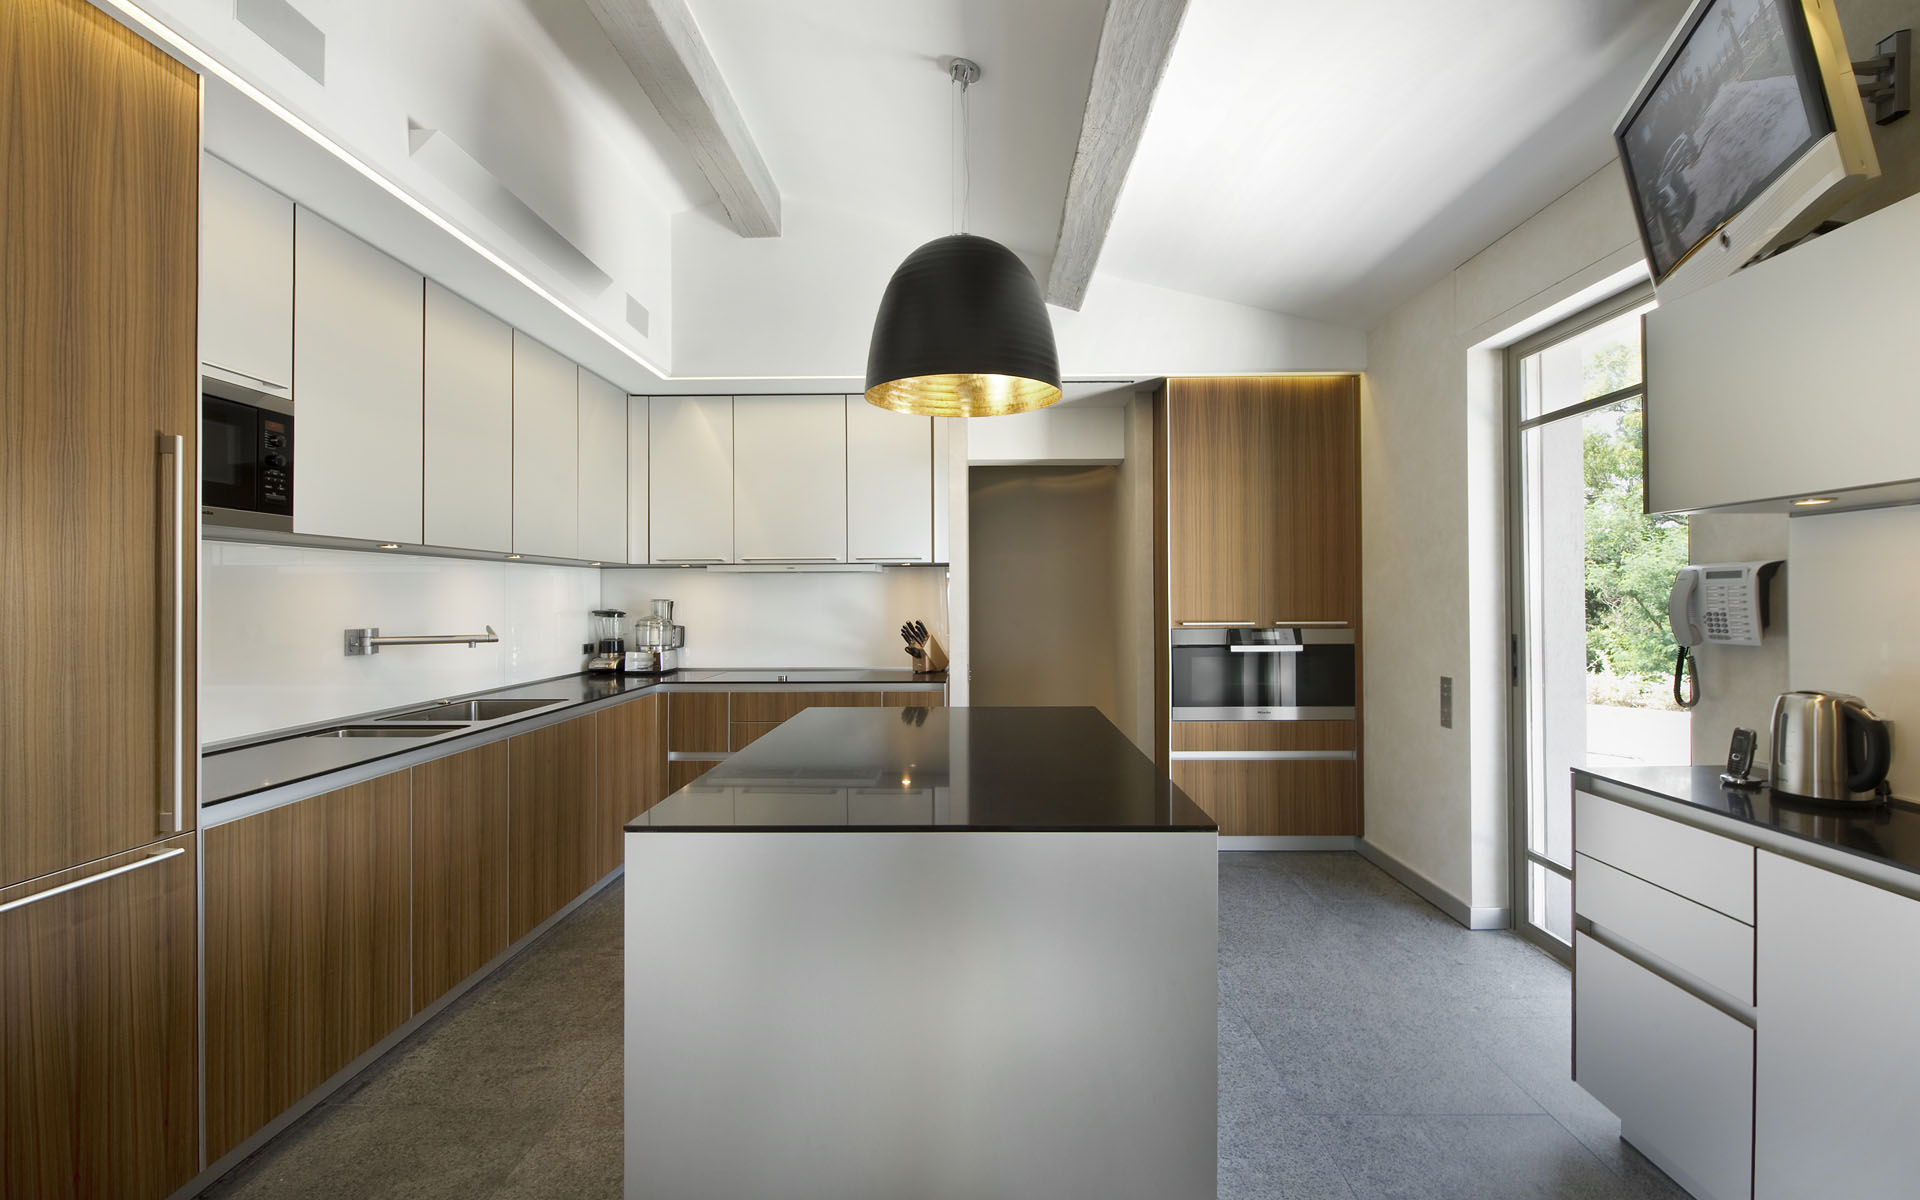 Minimalistic Kitchen Interior photo - 3